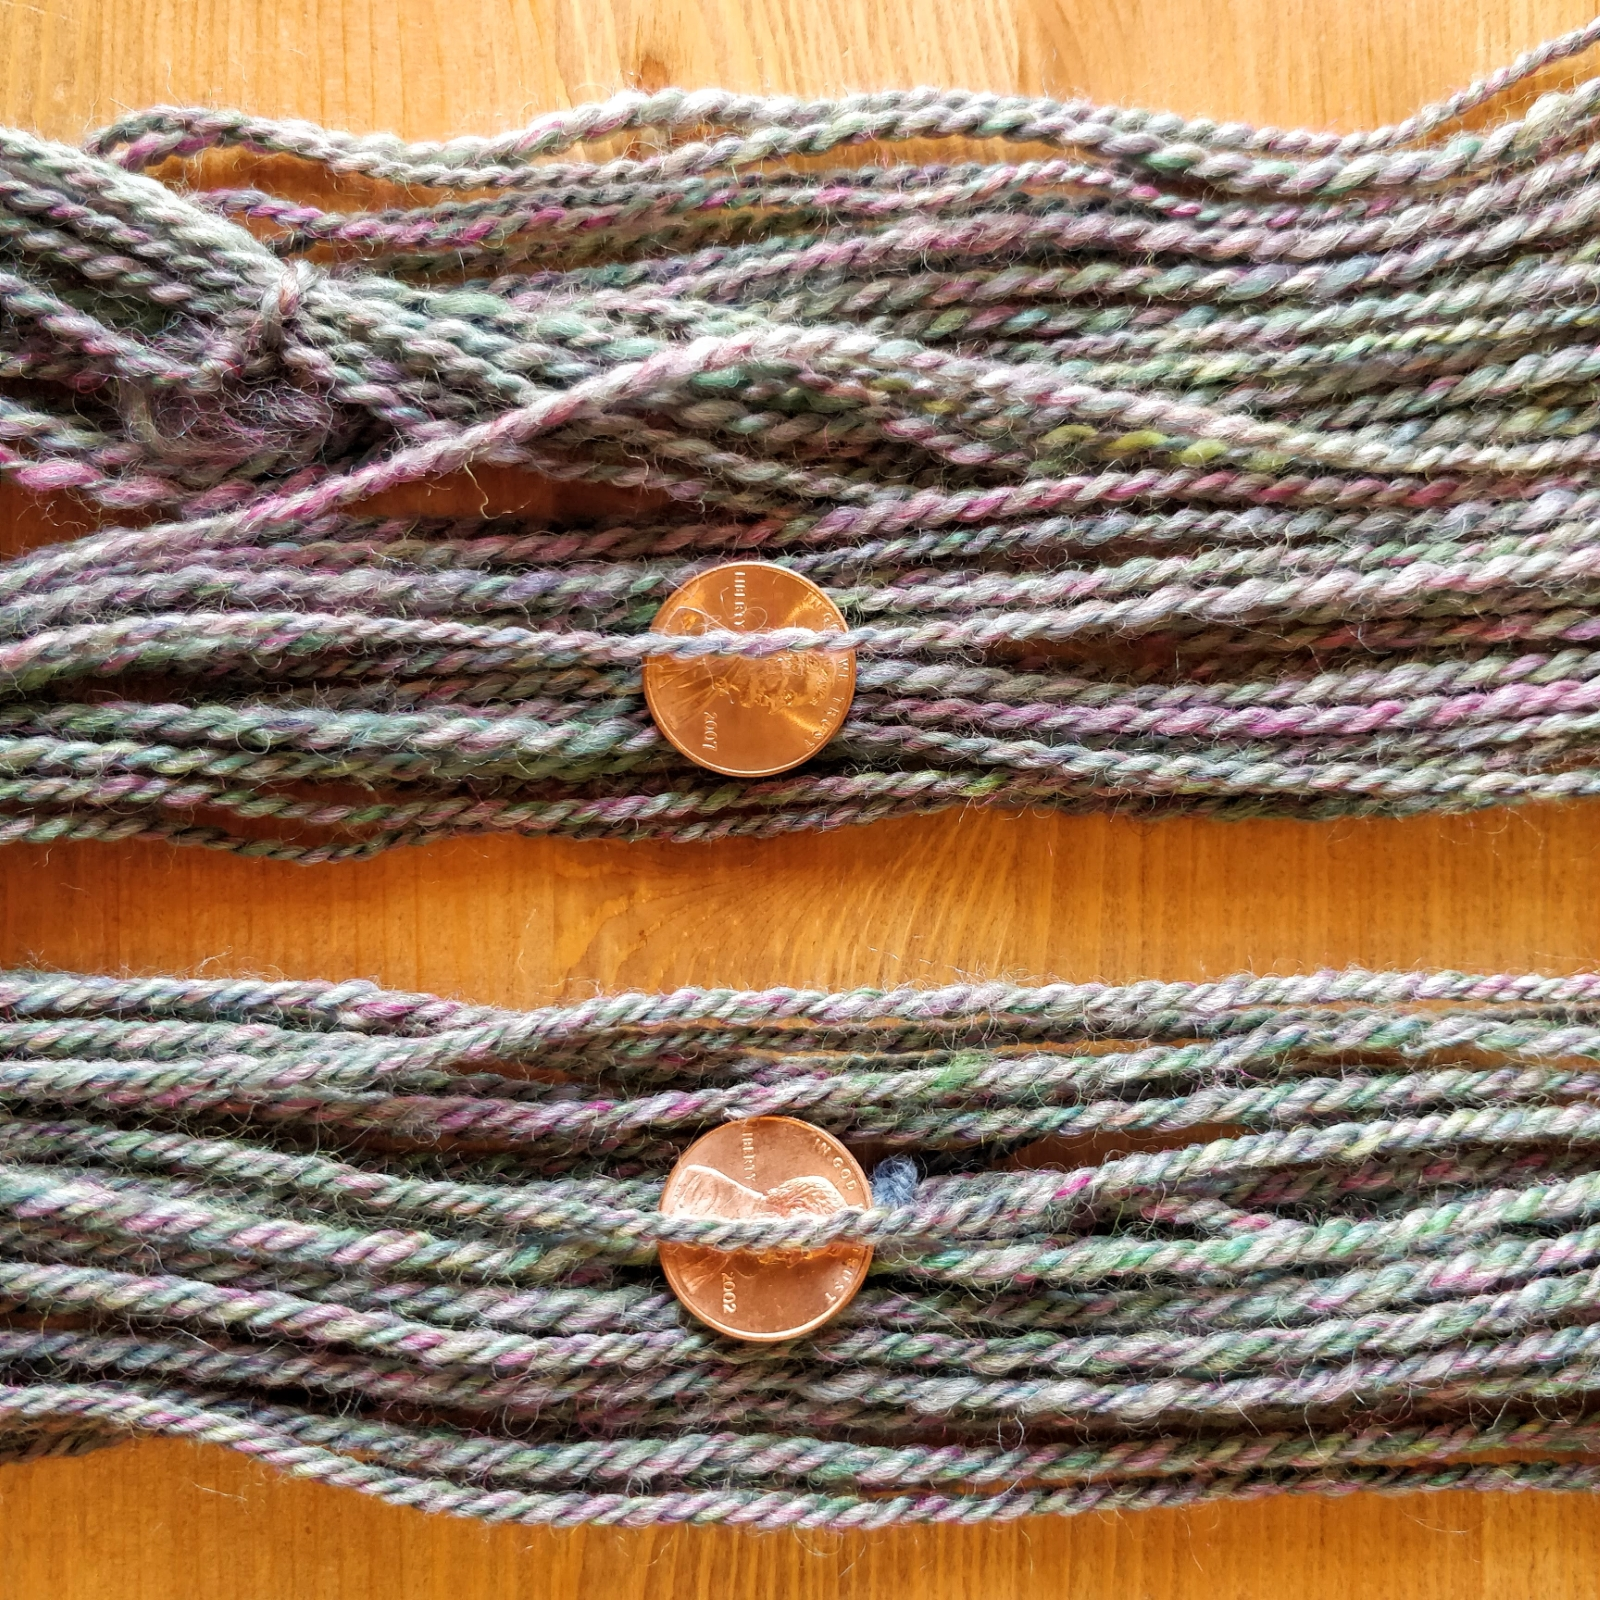 Samples of two-ply and three-ply yarn, spun from the same singles.